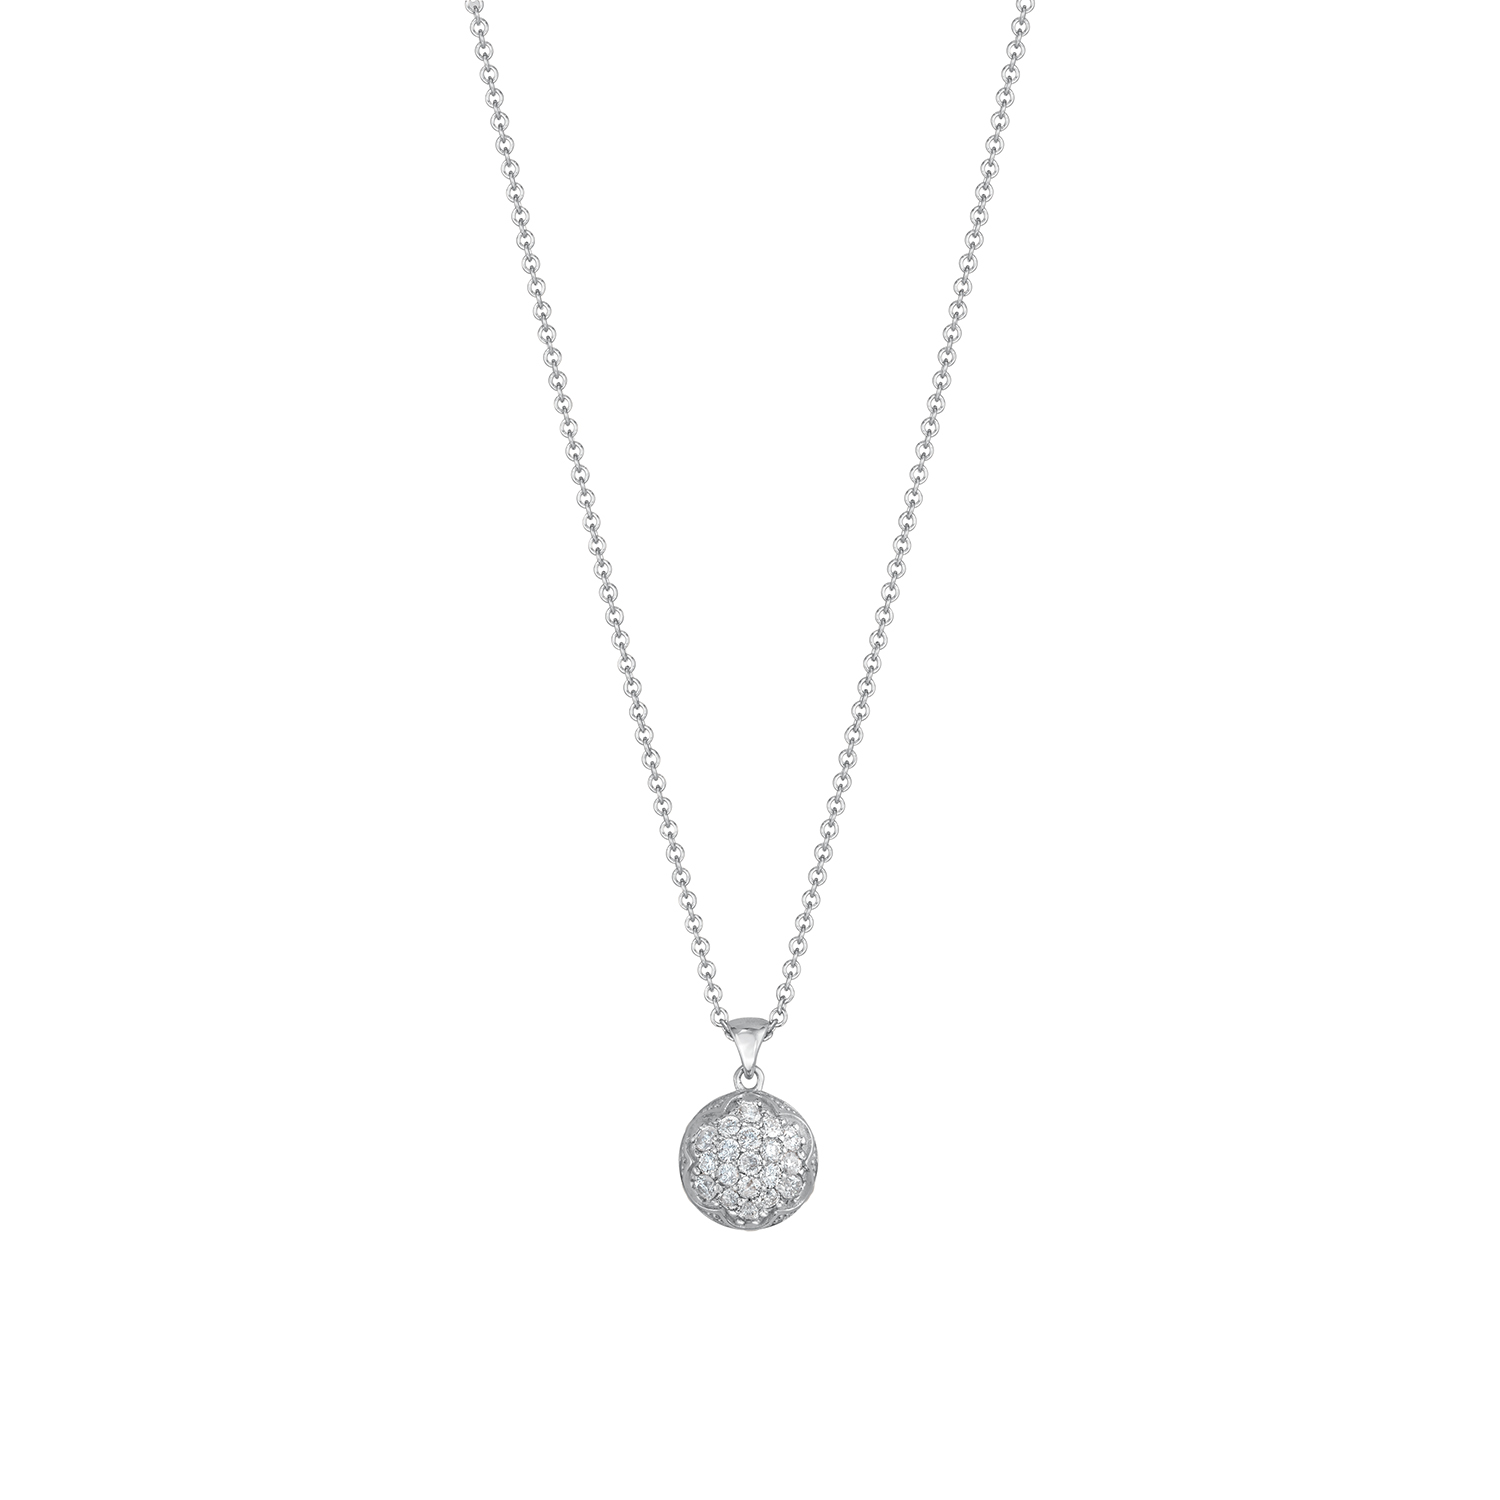 Tacori: Sterling Silver Pendant With 0.40Tw Round Diamonds Name: Sonoma Mist- Bold Pave Dew Drop Chain: Sterling Silver  Cable Link 18